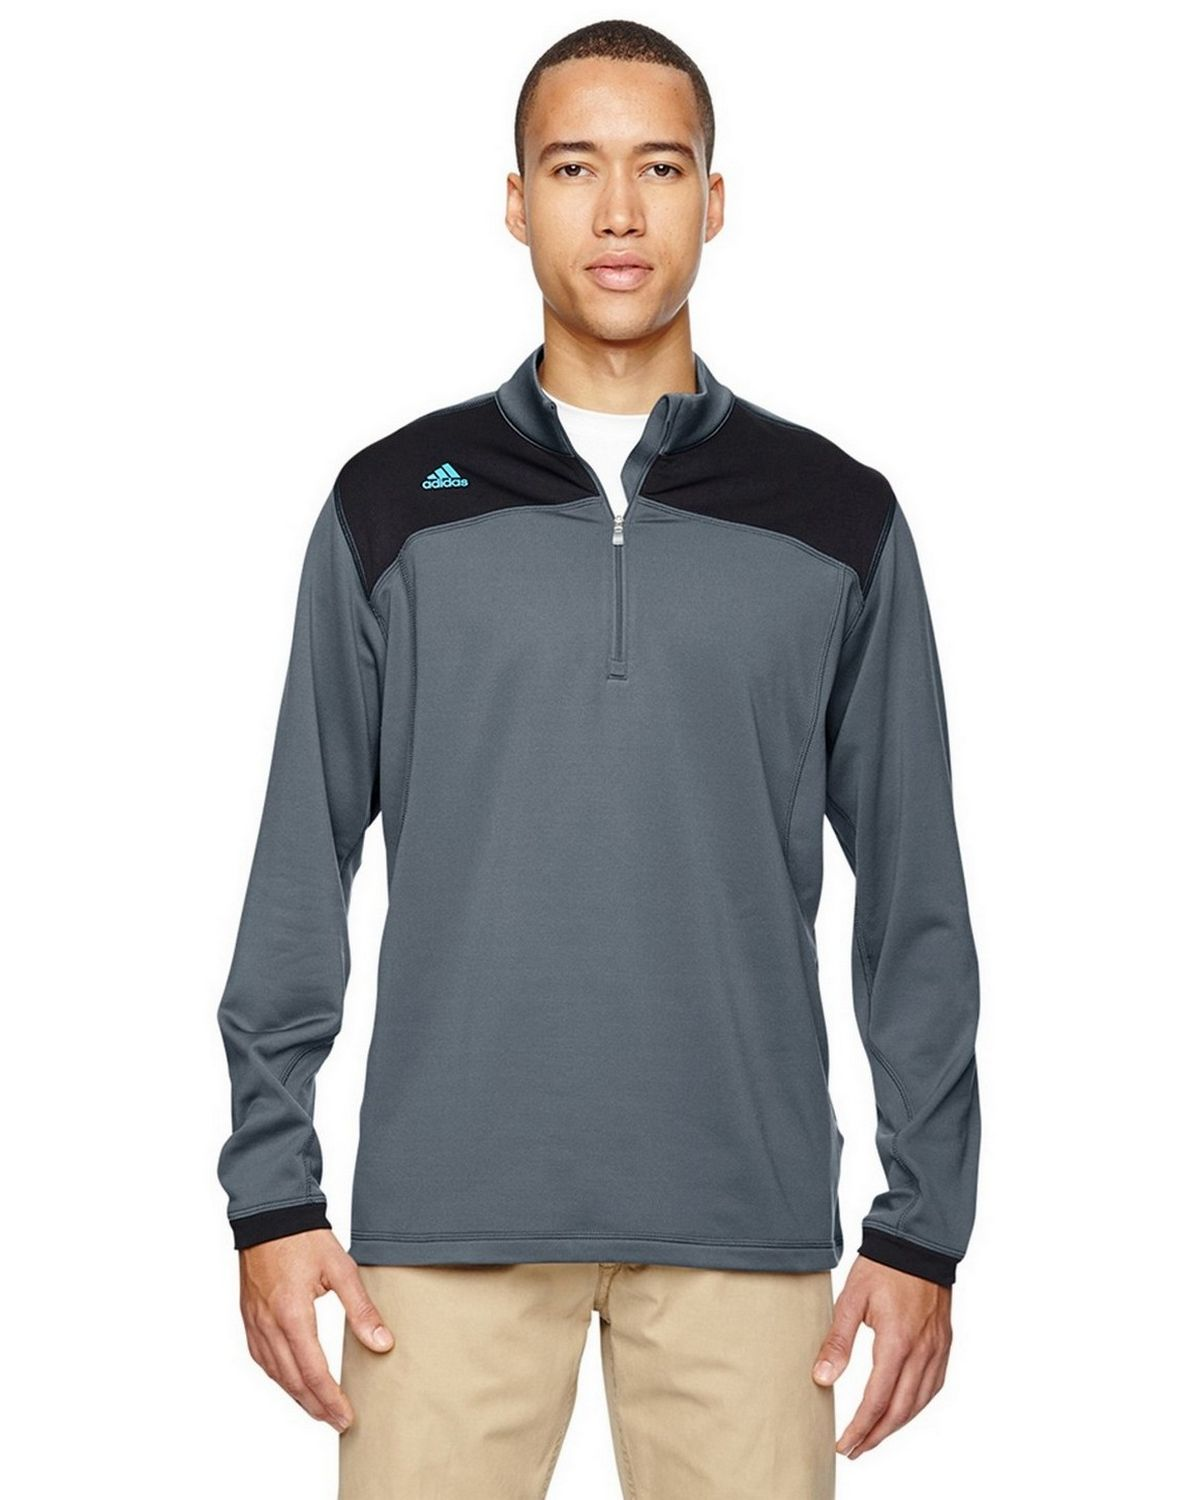 Adidas Golf A201 Men's Climawarm Plus Half Zip Pullover